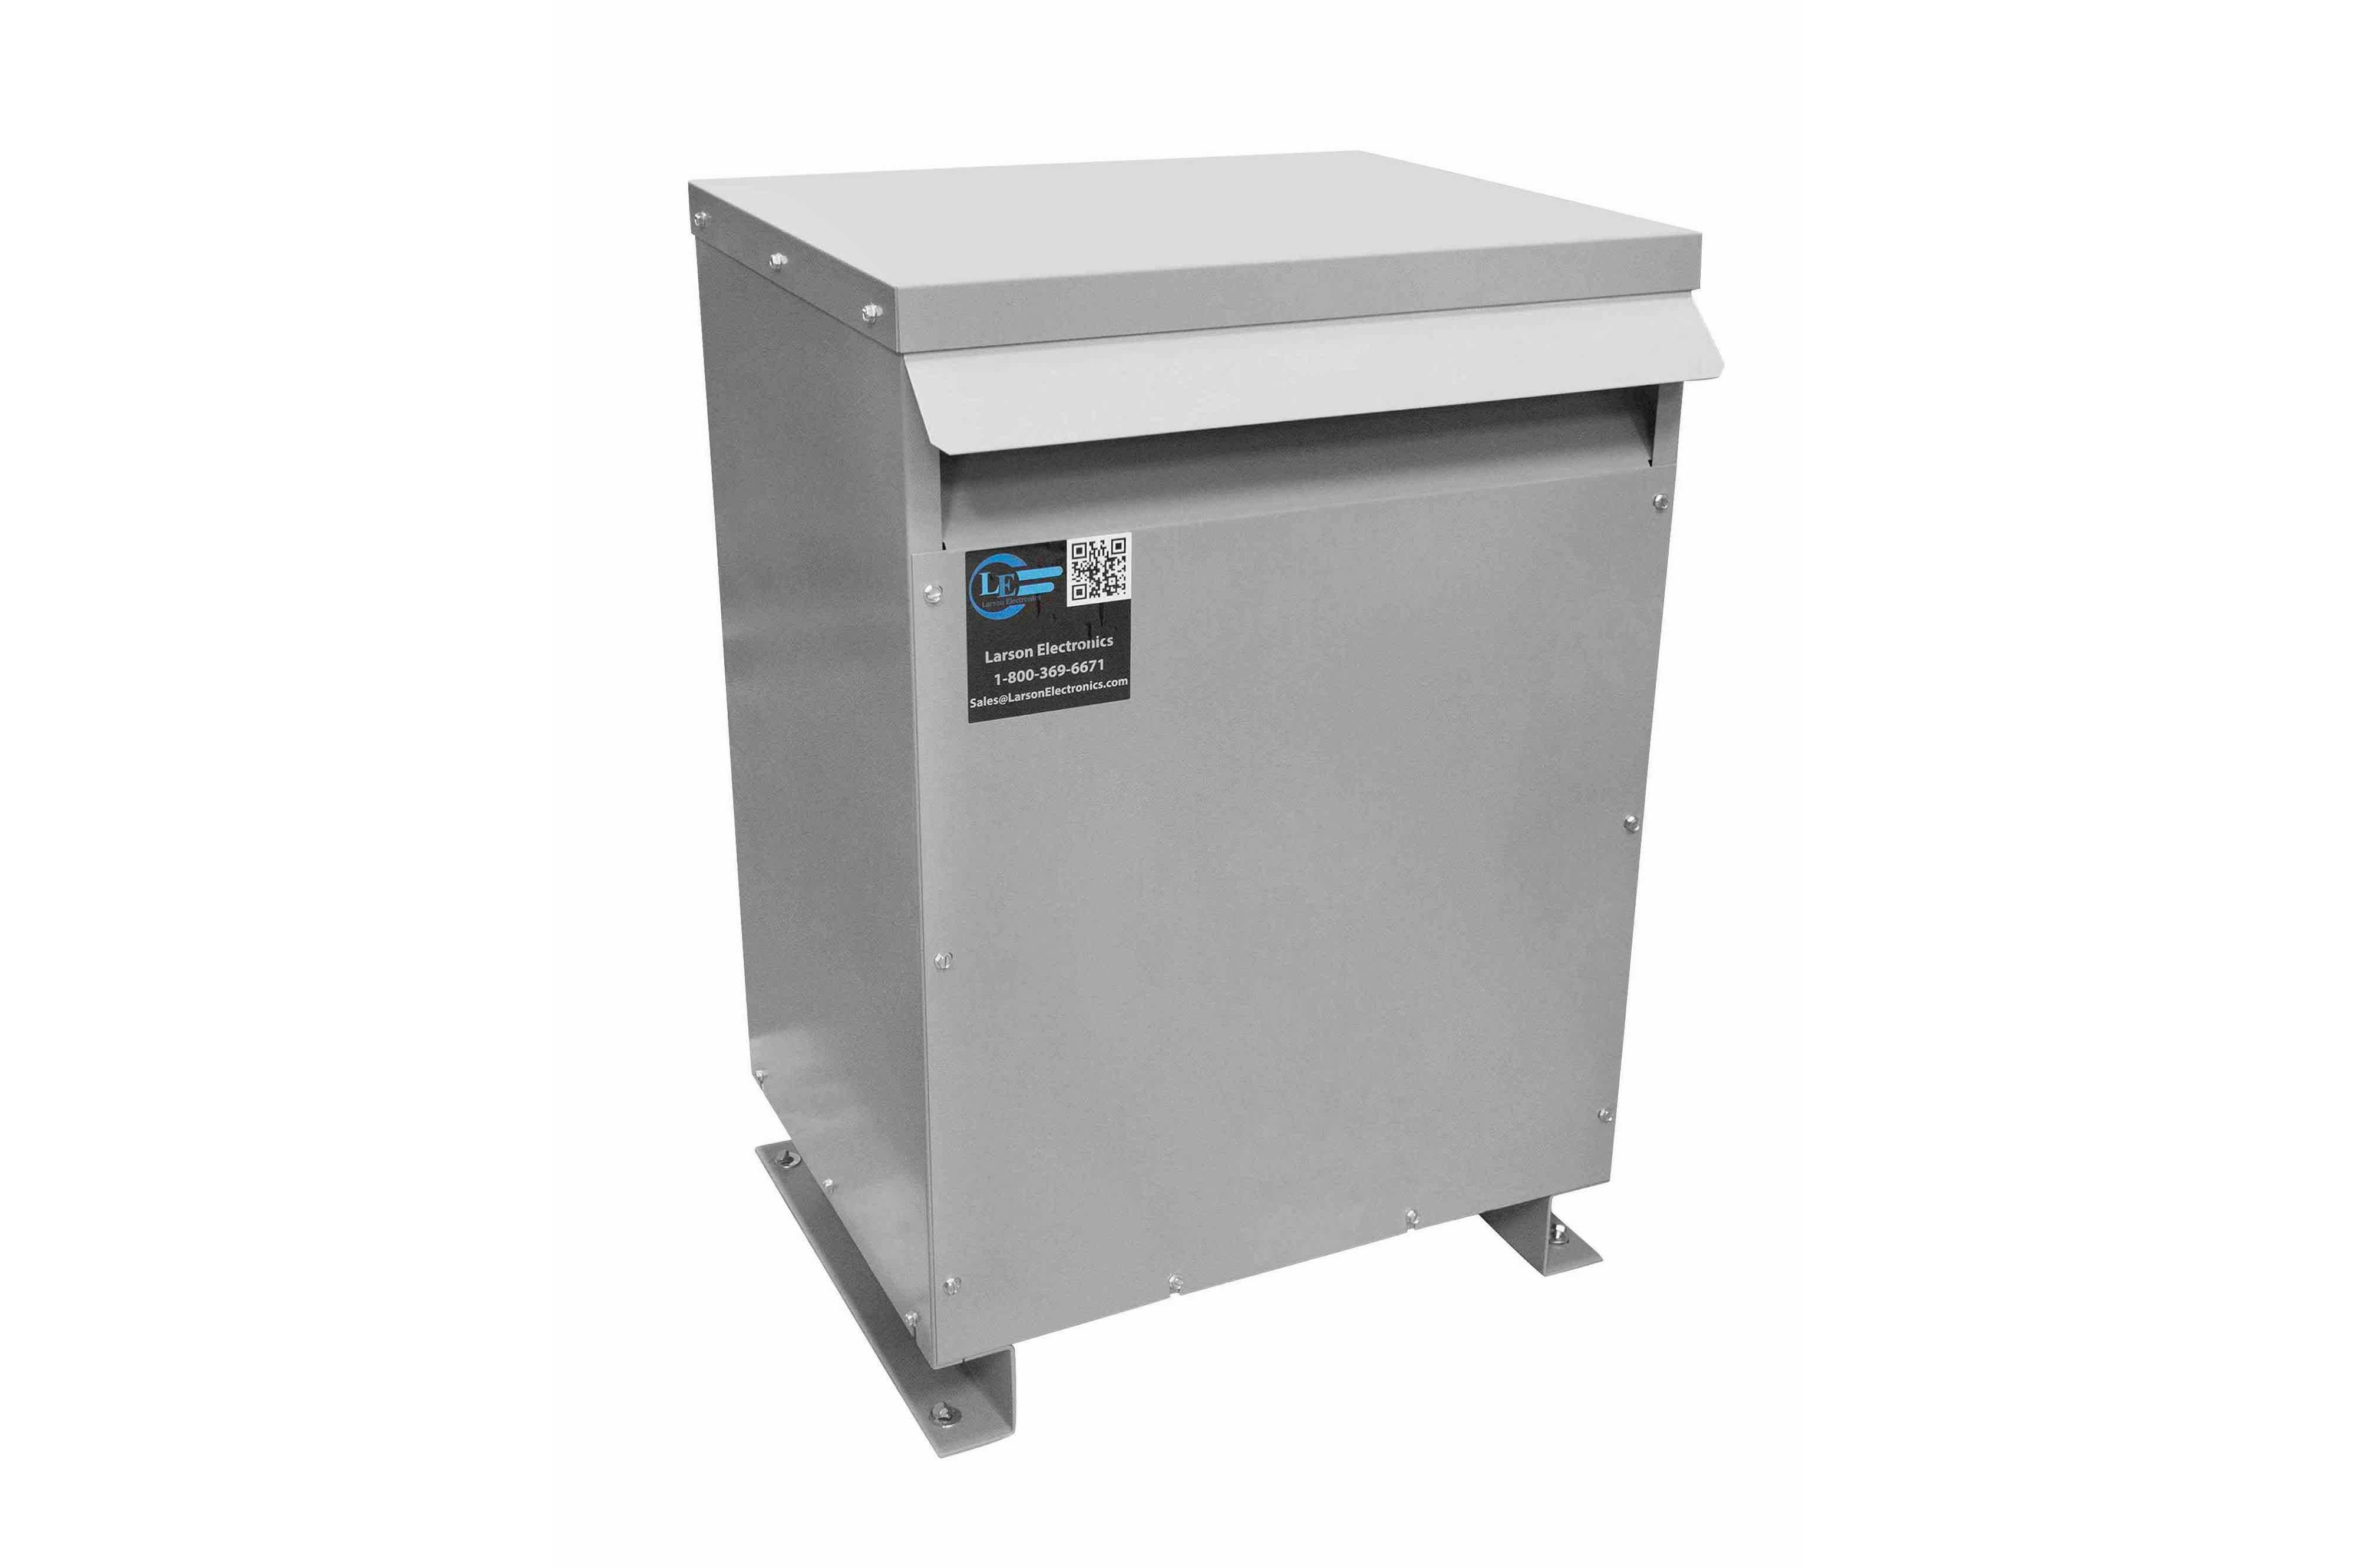 30 kVA 3PH Isolation Transformer, 600V Wye Primary, 415V Delta Secondary, N3R, Ventilated, 60 Hz